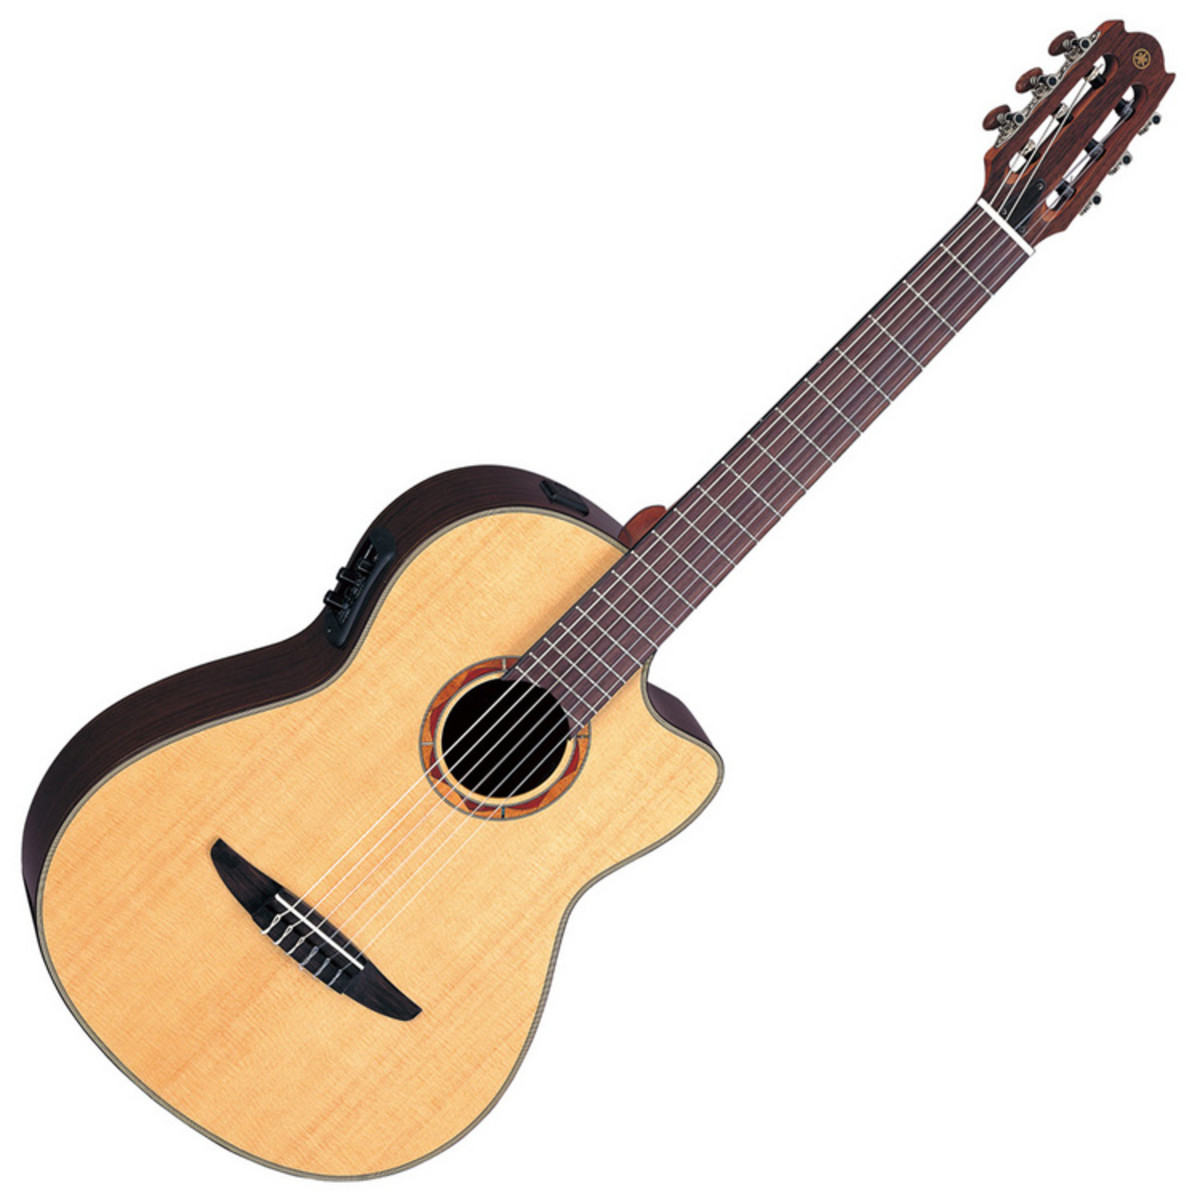 Yamaha ncx900r electro acoustic classical guitar at for Yamaha acoustic bass guitar